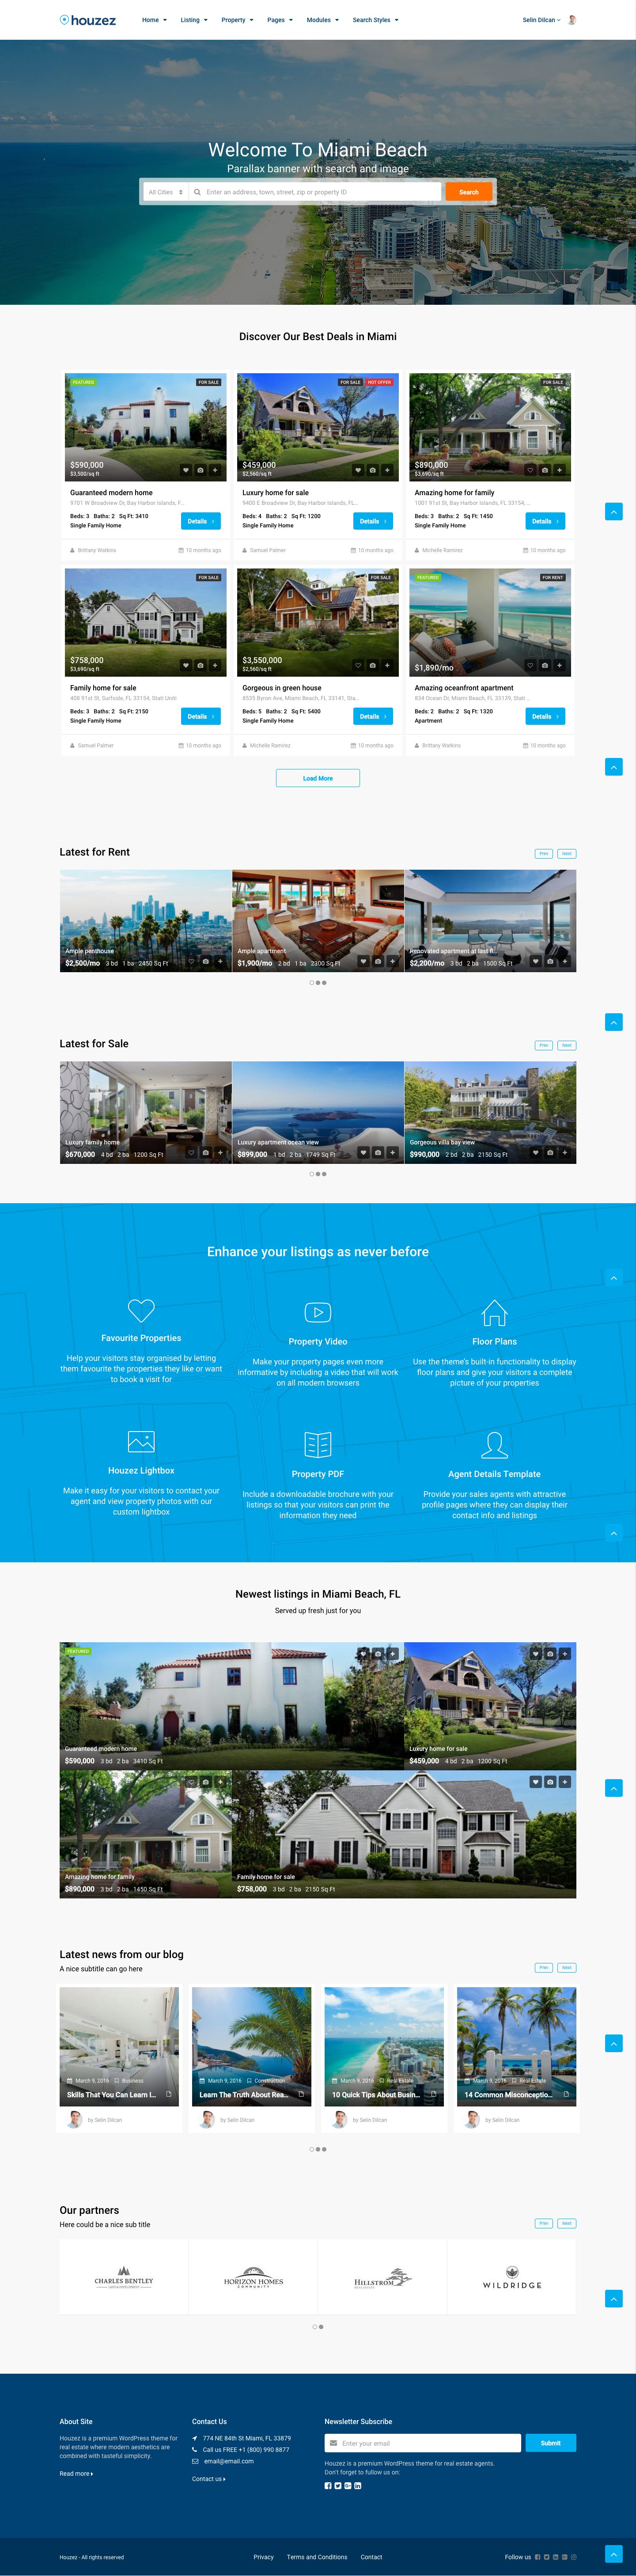 Houzez real estate wordpress theme by favethemes themeforest houzez real estate wordpress theme fandeluxe Image collections